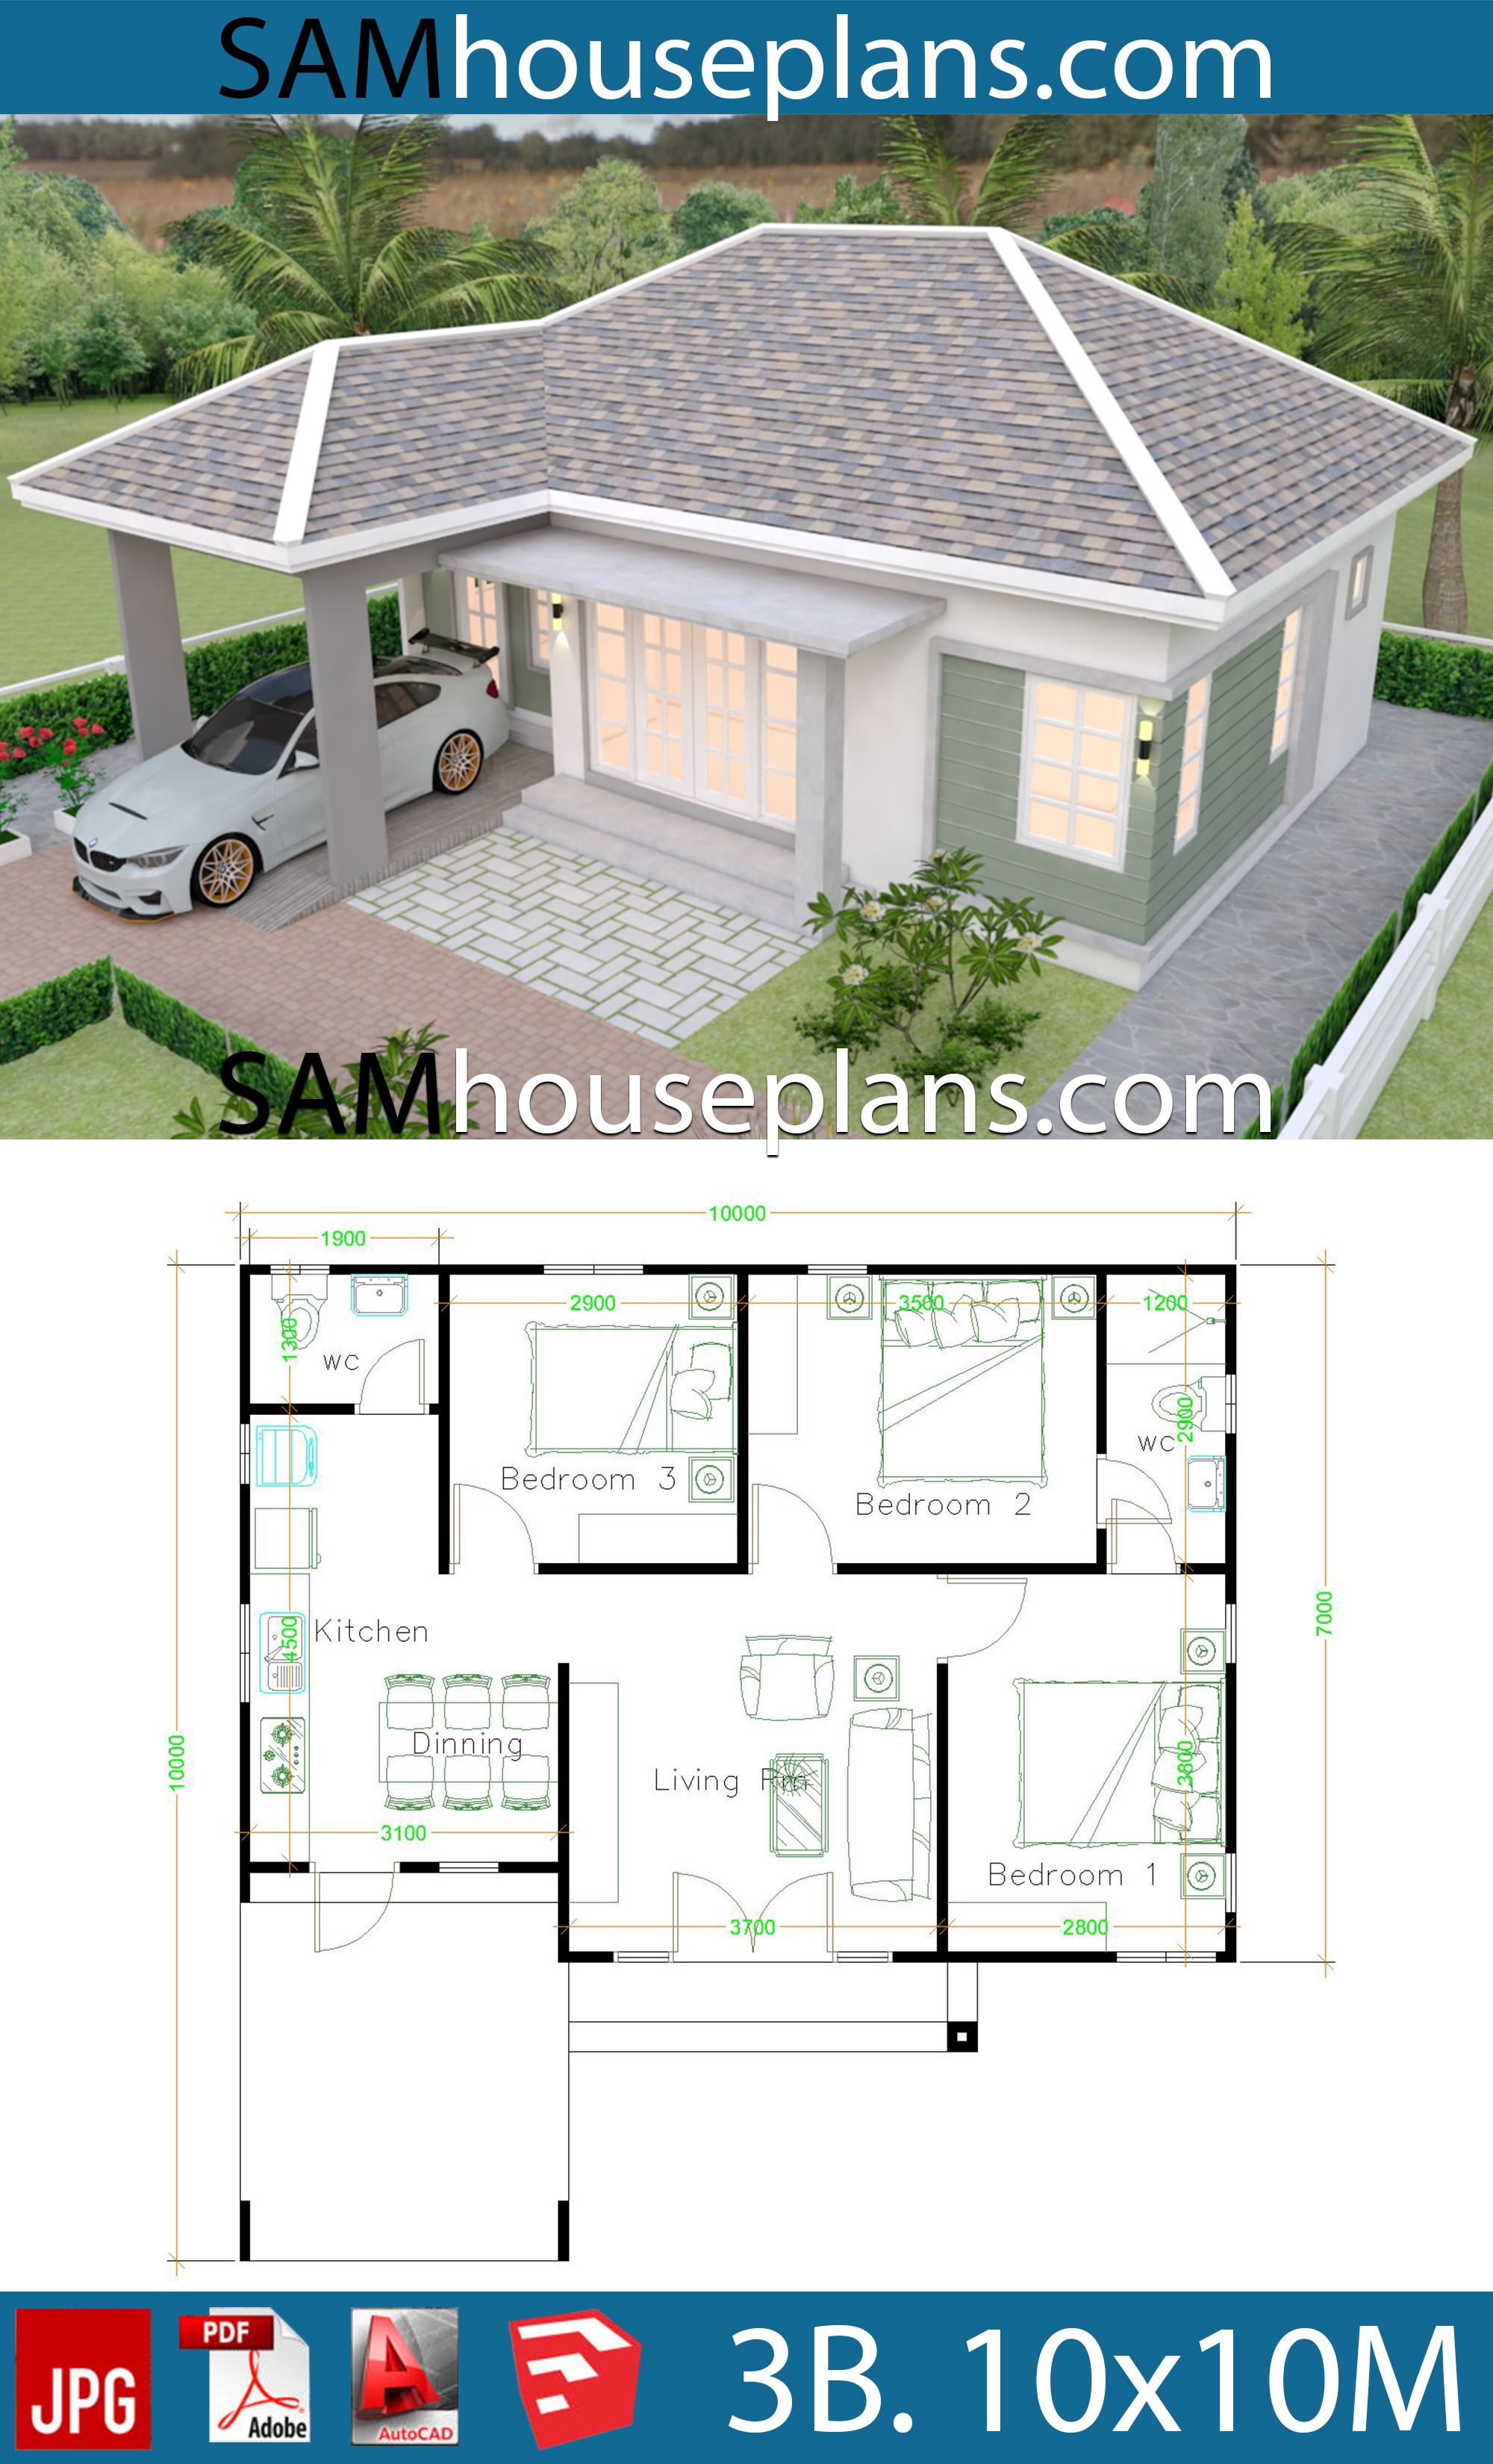 House Plans 10x10 With 3 Bedrooms House Plans Free Downloads House Plan Gallery Small House Blueprints House Construction Plan